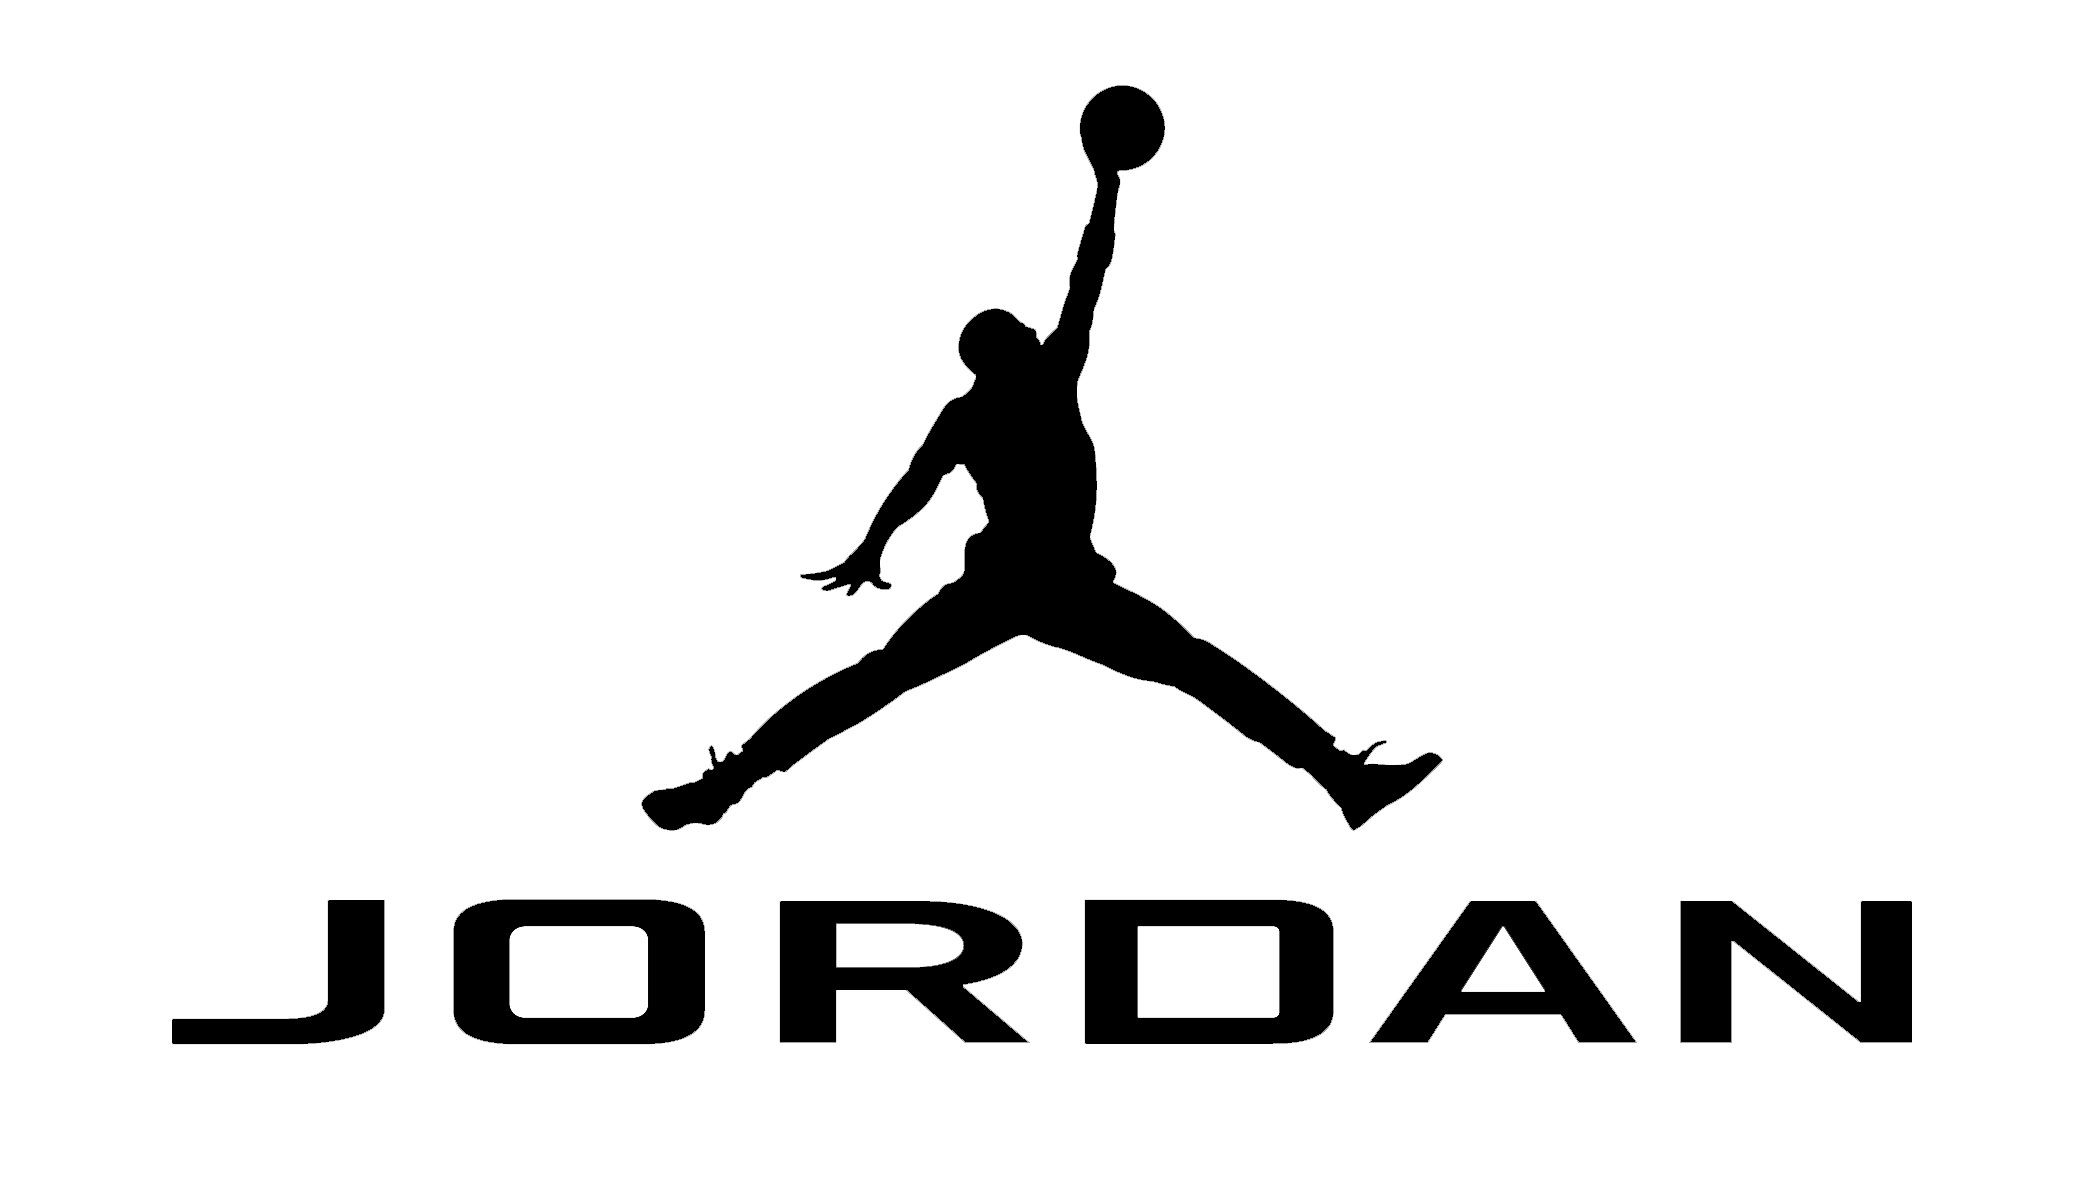 340x270 Michael Jordan Etsy 2100x1204 Origin USA Launch 1984 Owner Of The Brand Nike Inc Section